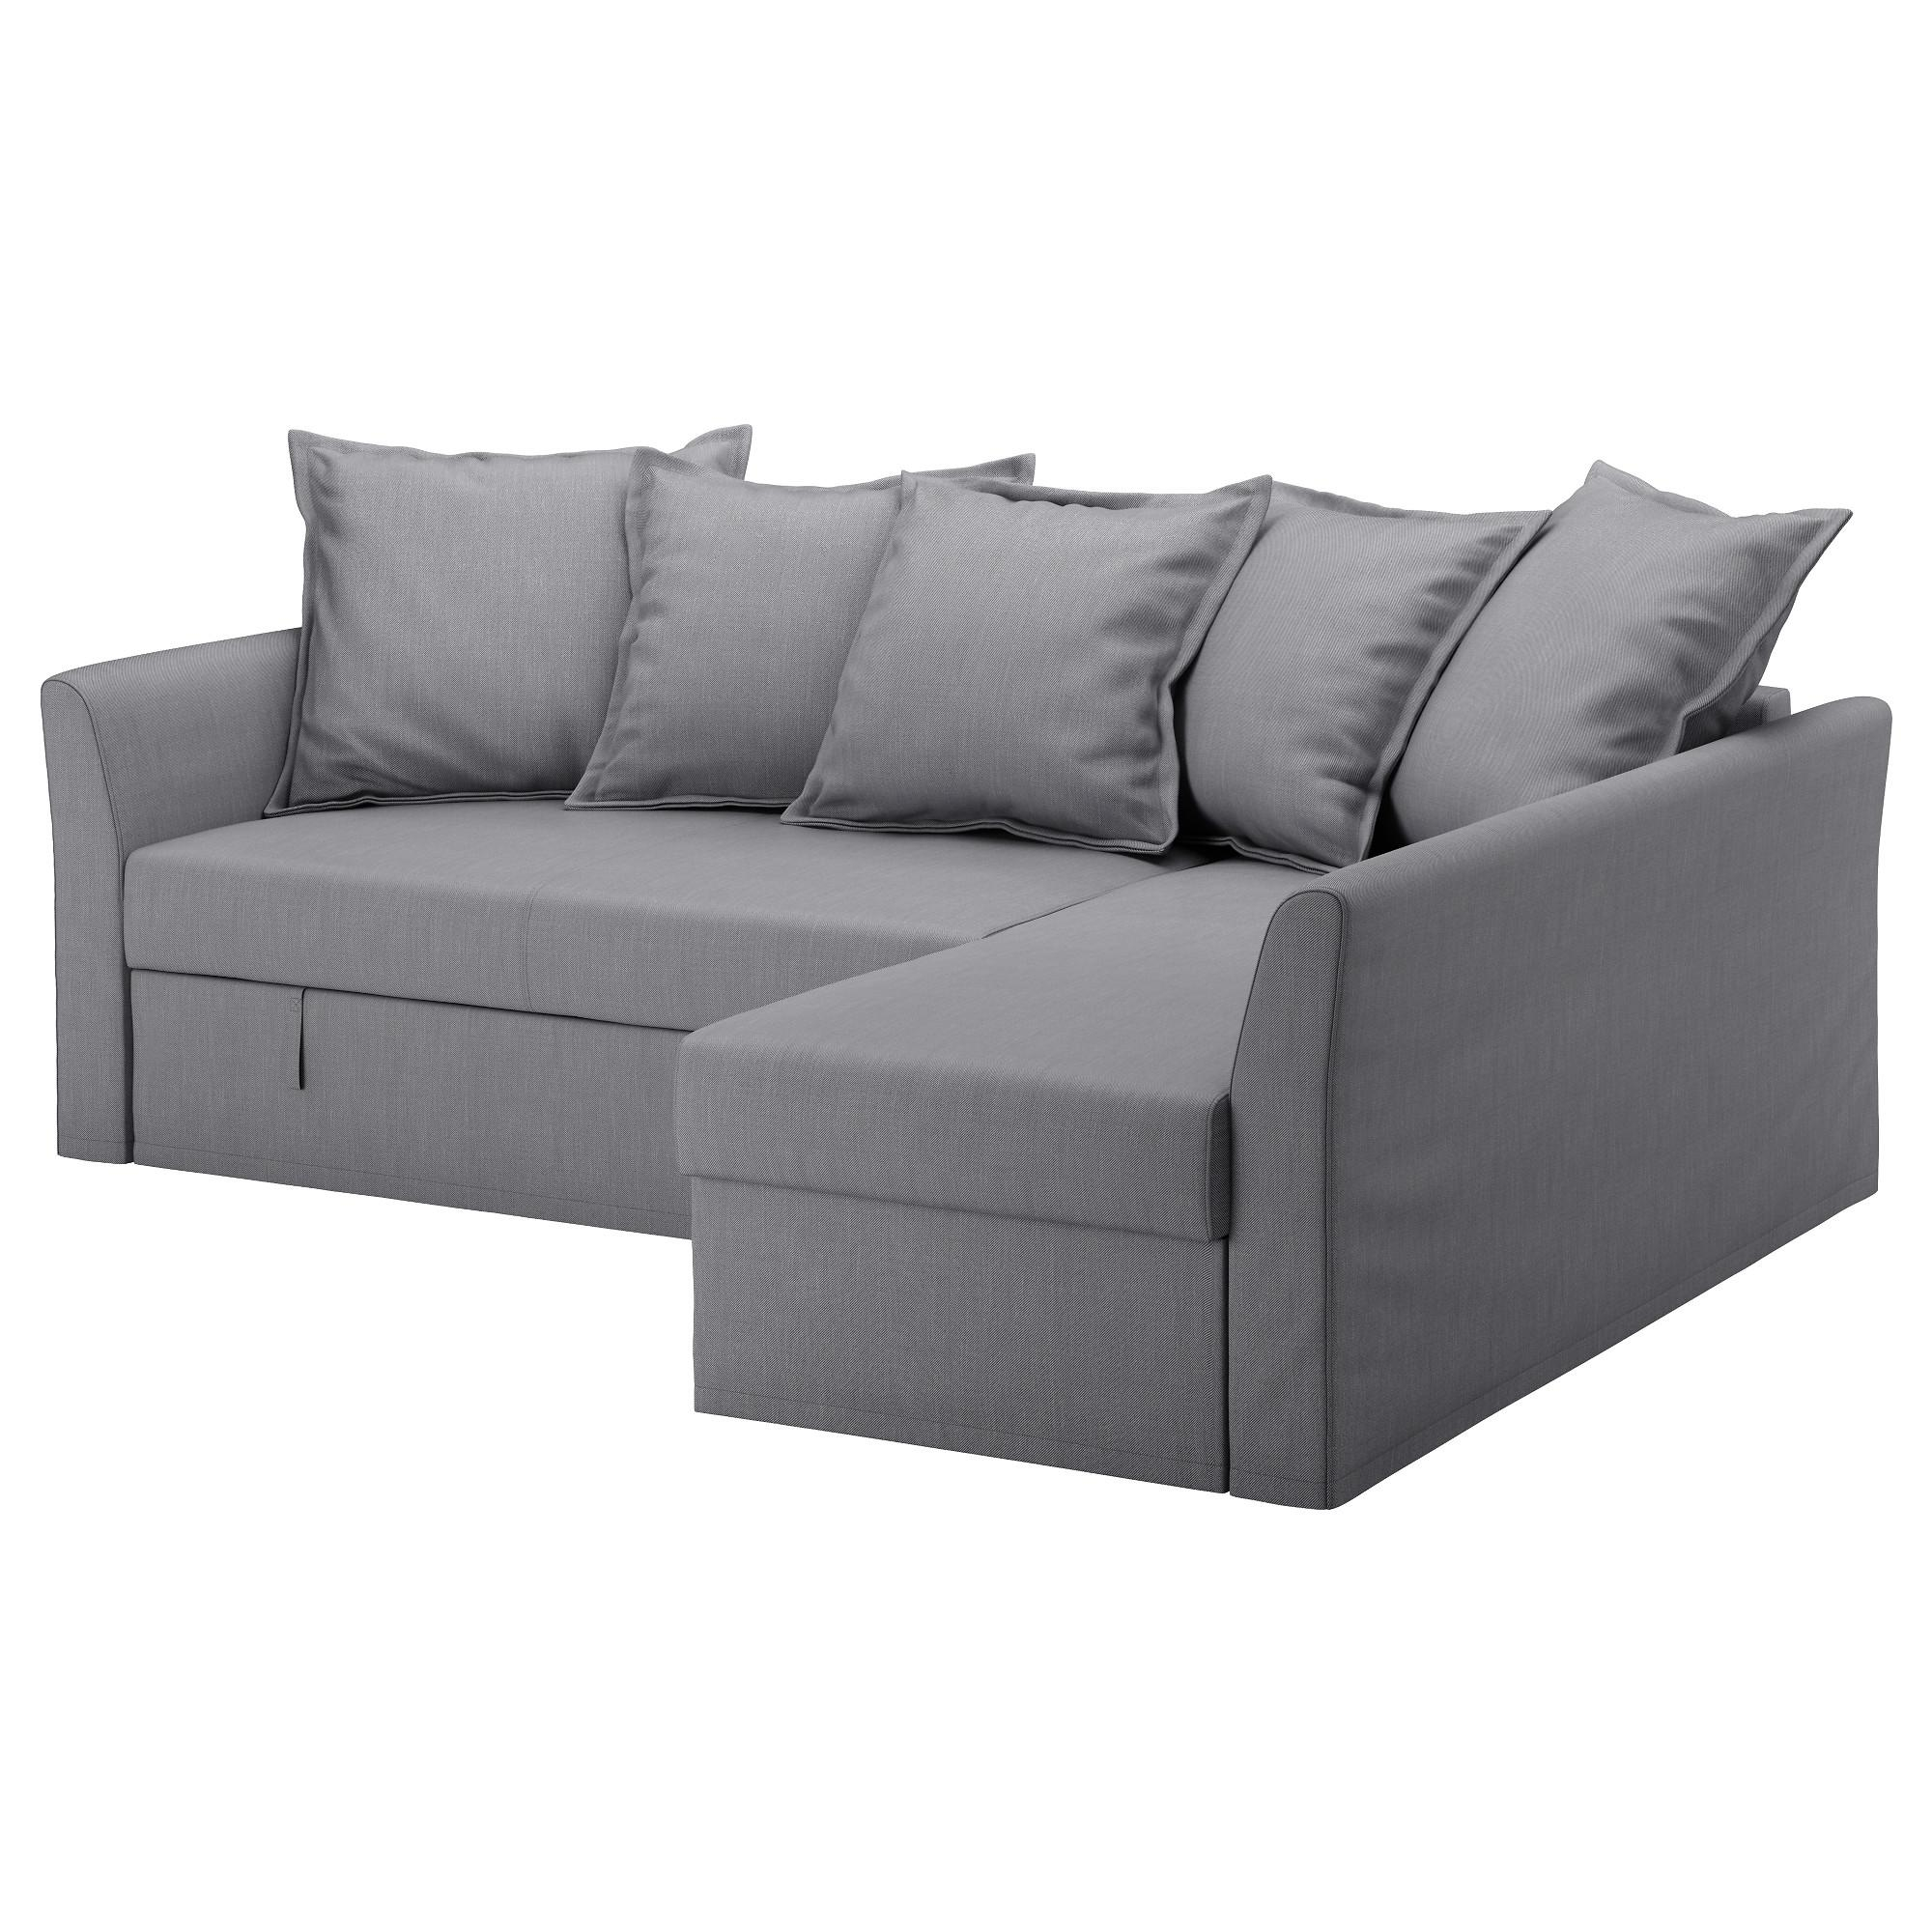 ikea sofa sleeper sectional chesterfield london gumtree 20 best loveseat sofas ideas